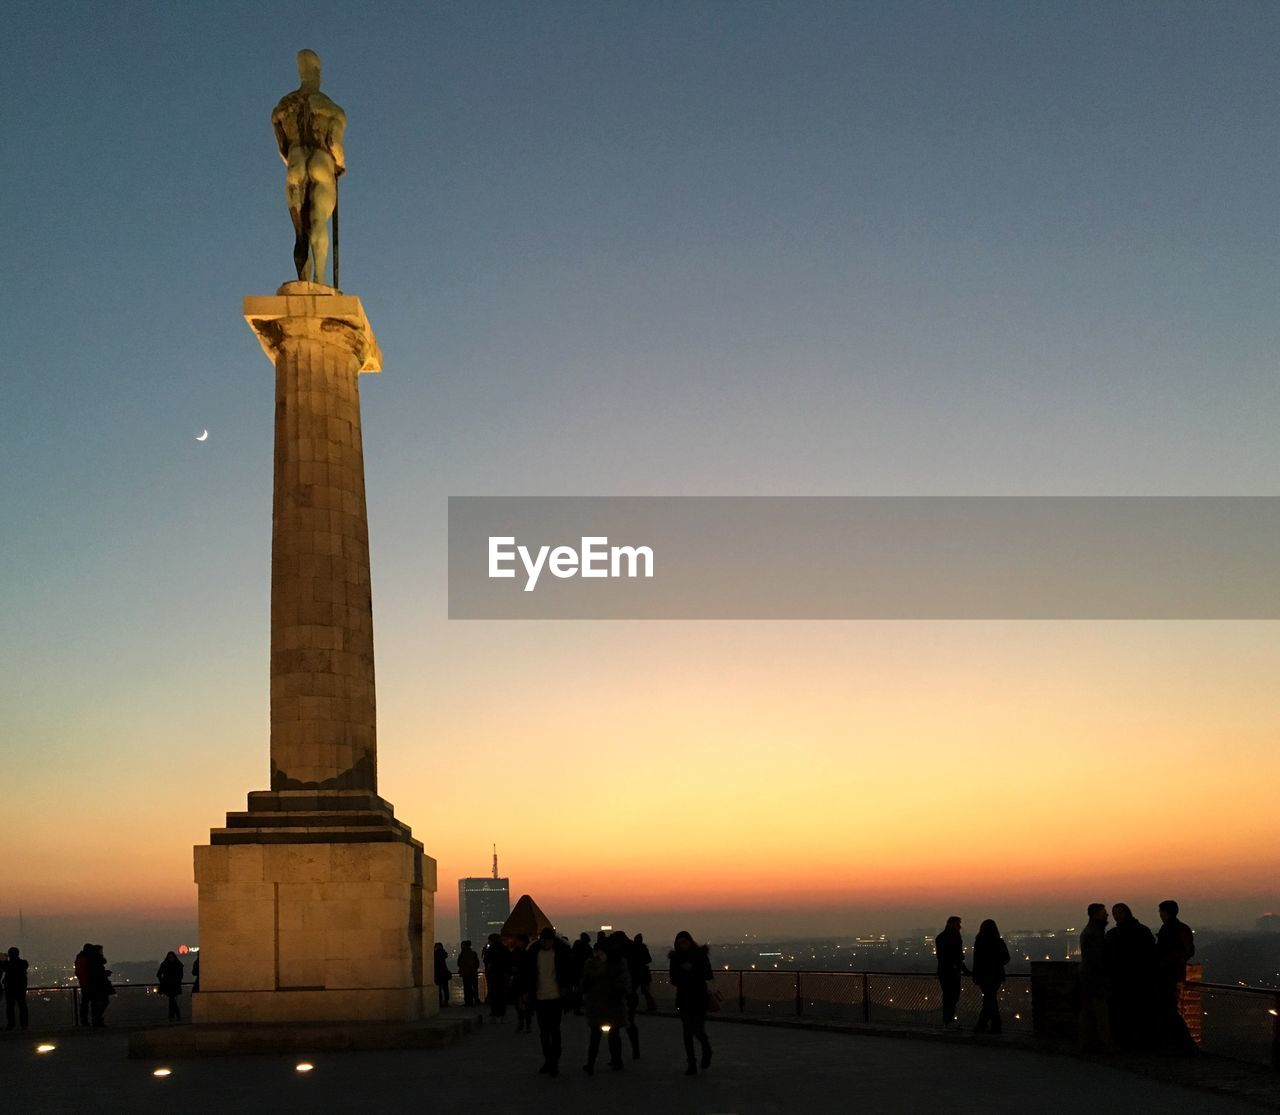 sky, sunset, sculpture, statue, travel, nature, human representation, art and craft, architecture, tourism, representation, large group of people, memorial, travel destinations, architectural column, clear sky, group of people, the past, history, built structure, outdoors